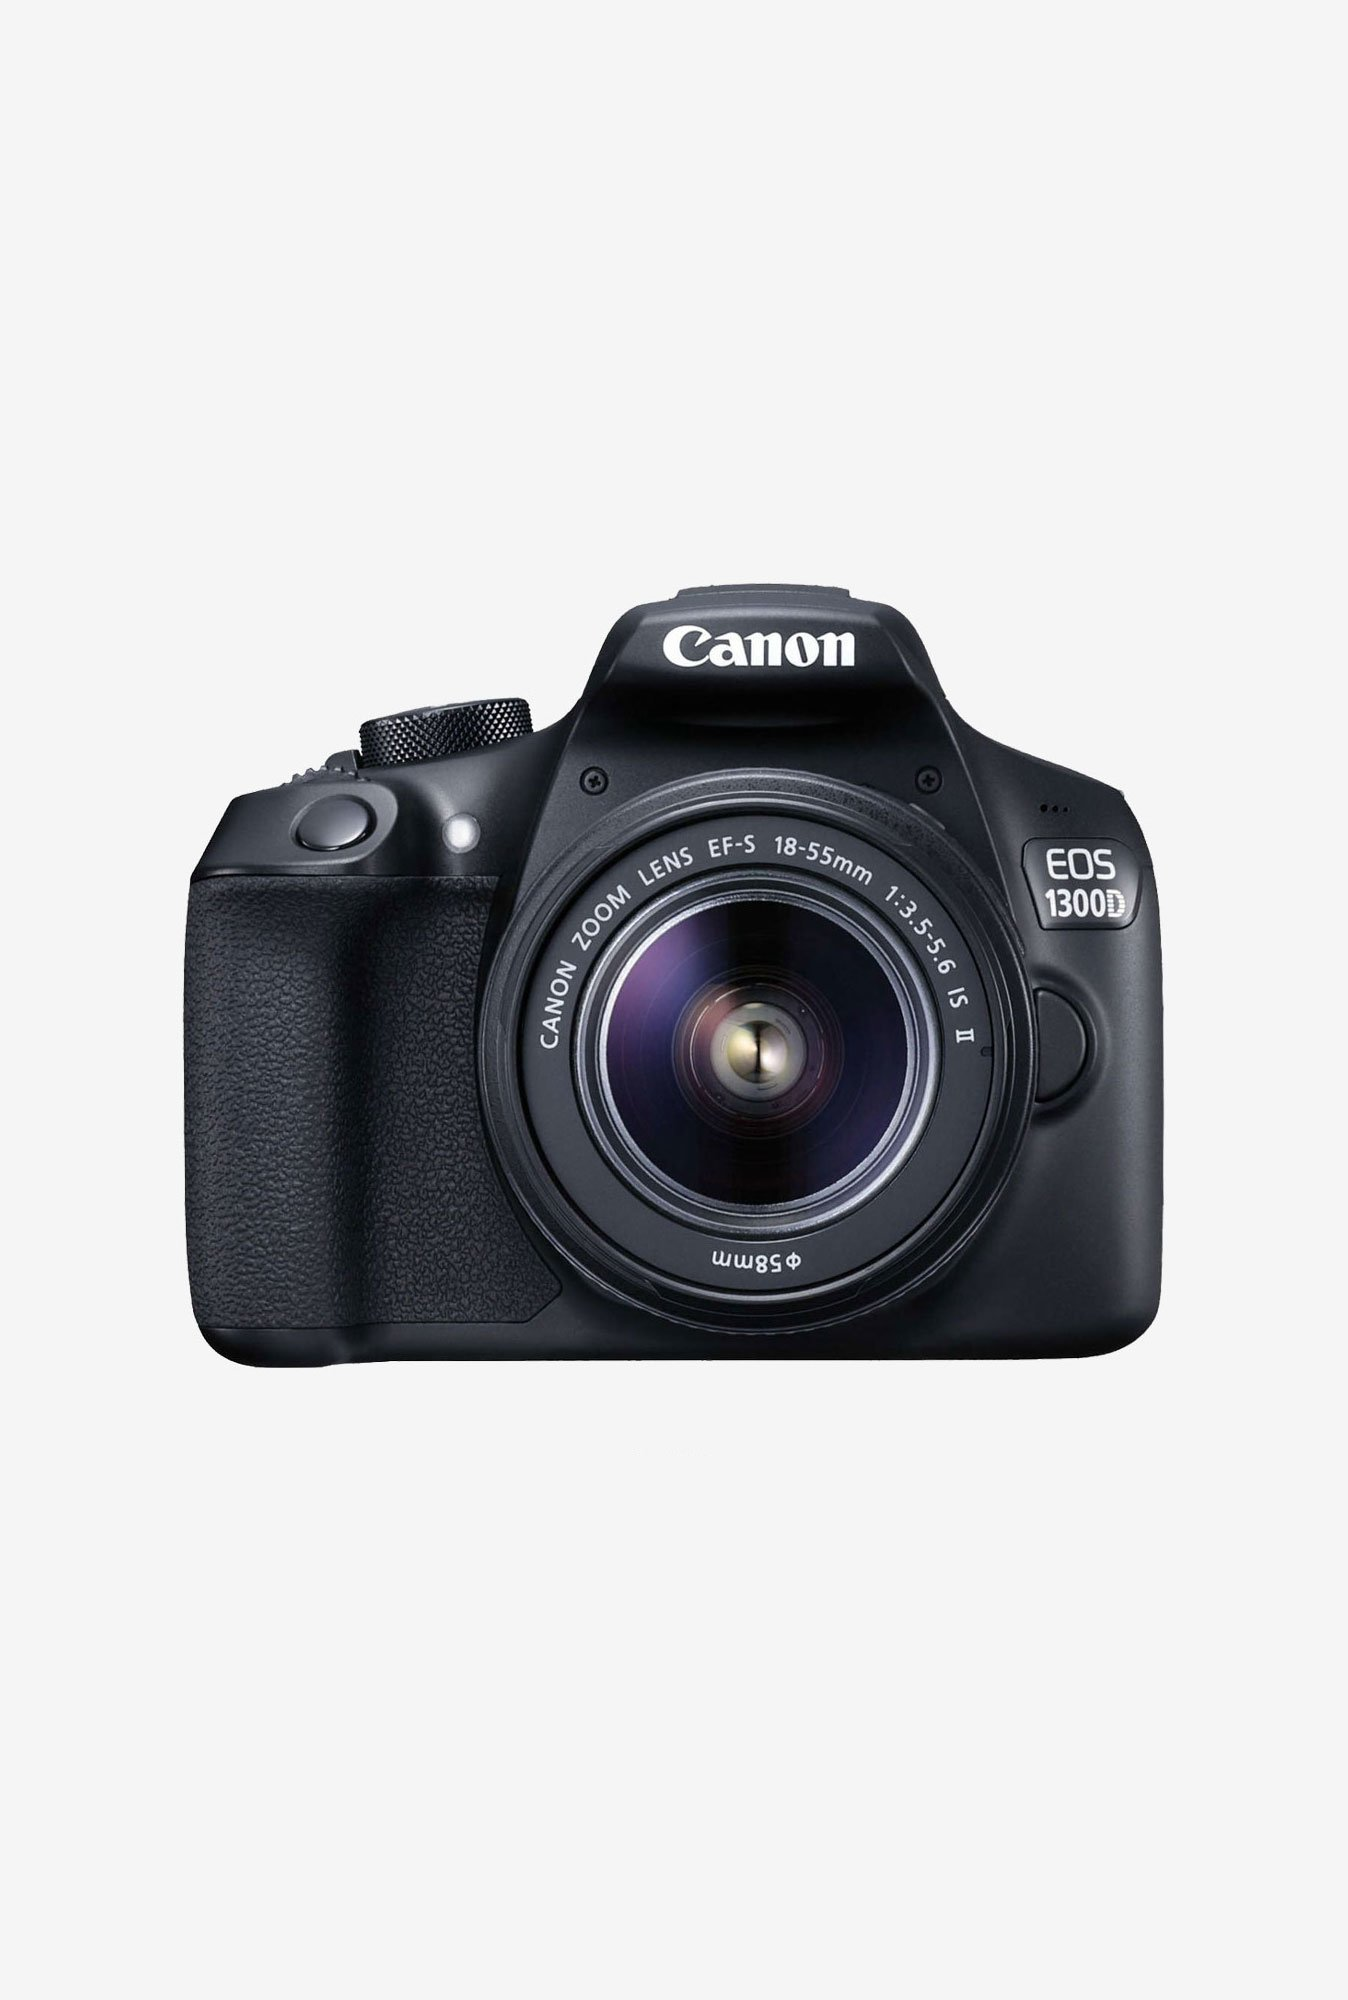 Canon EOS 1300D (EF S18-55 IS II Lens) Camera + Free Headset